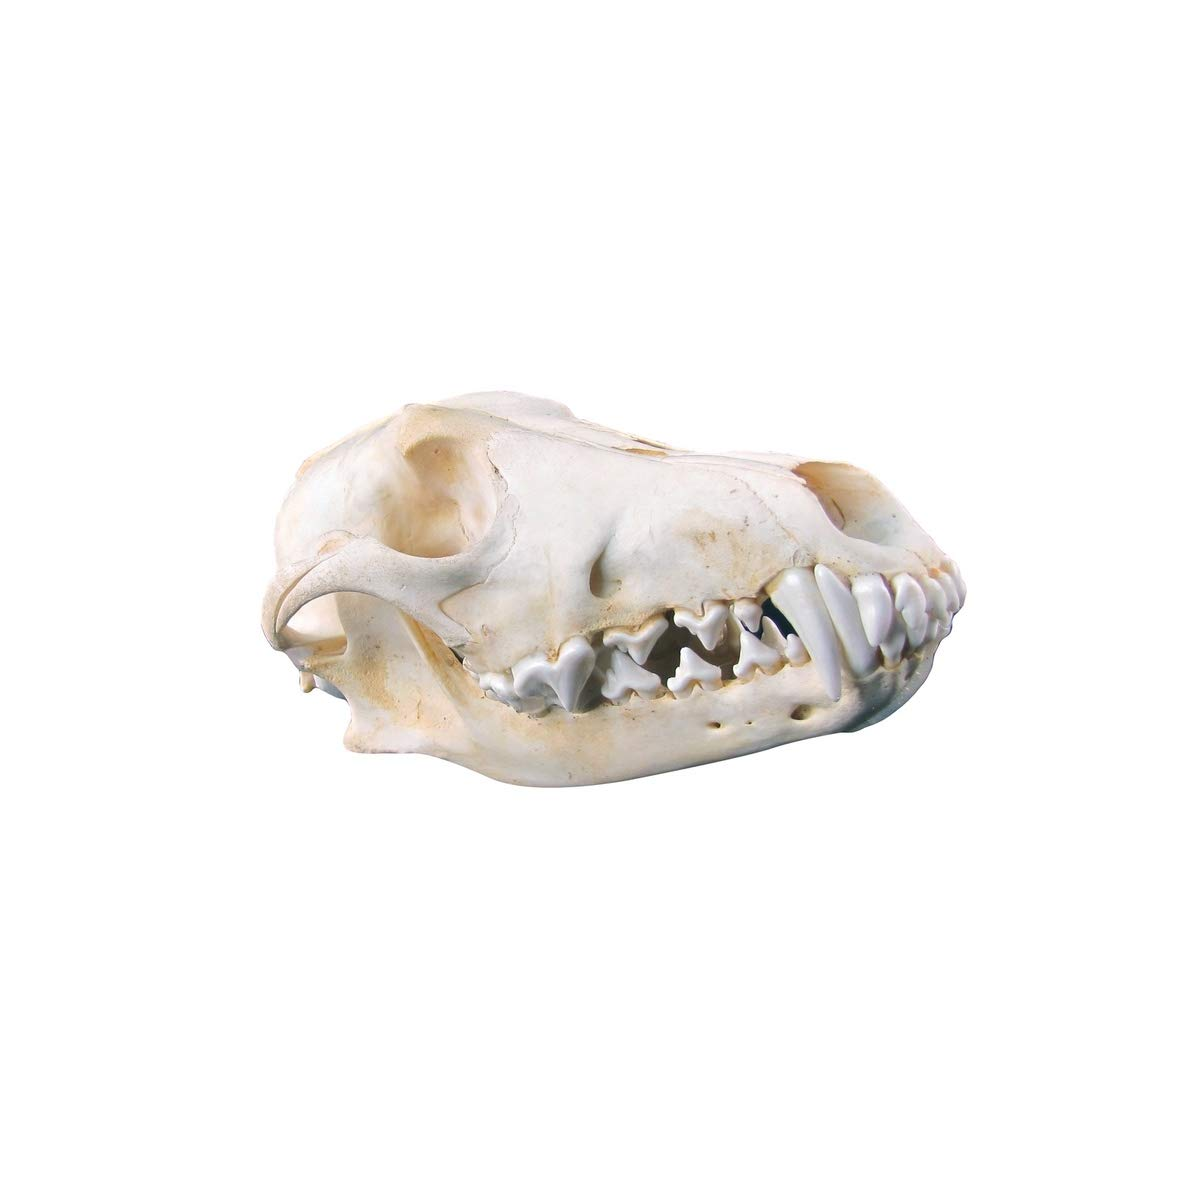 TG,LLC Real Coyote Skull Genuine Taxidermy Animal Bones Unique Hunting Cabin Bar Decor by TG,LLC